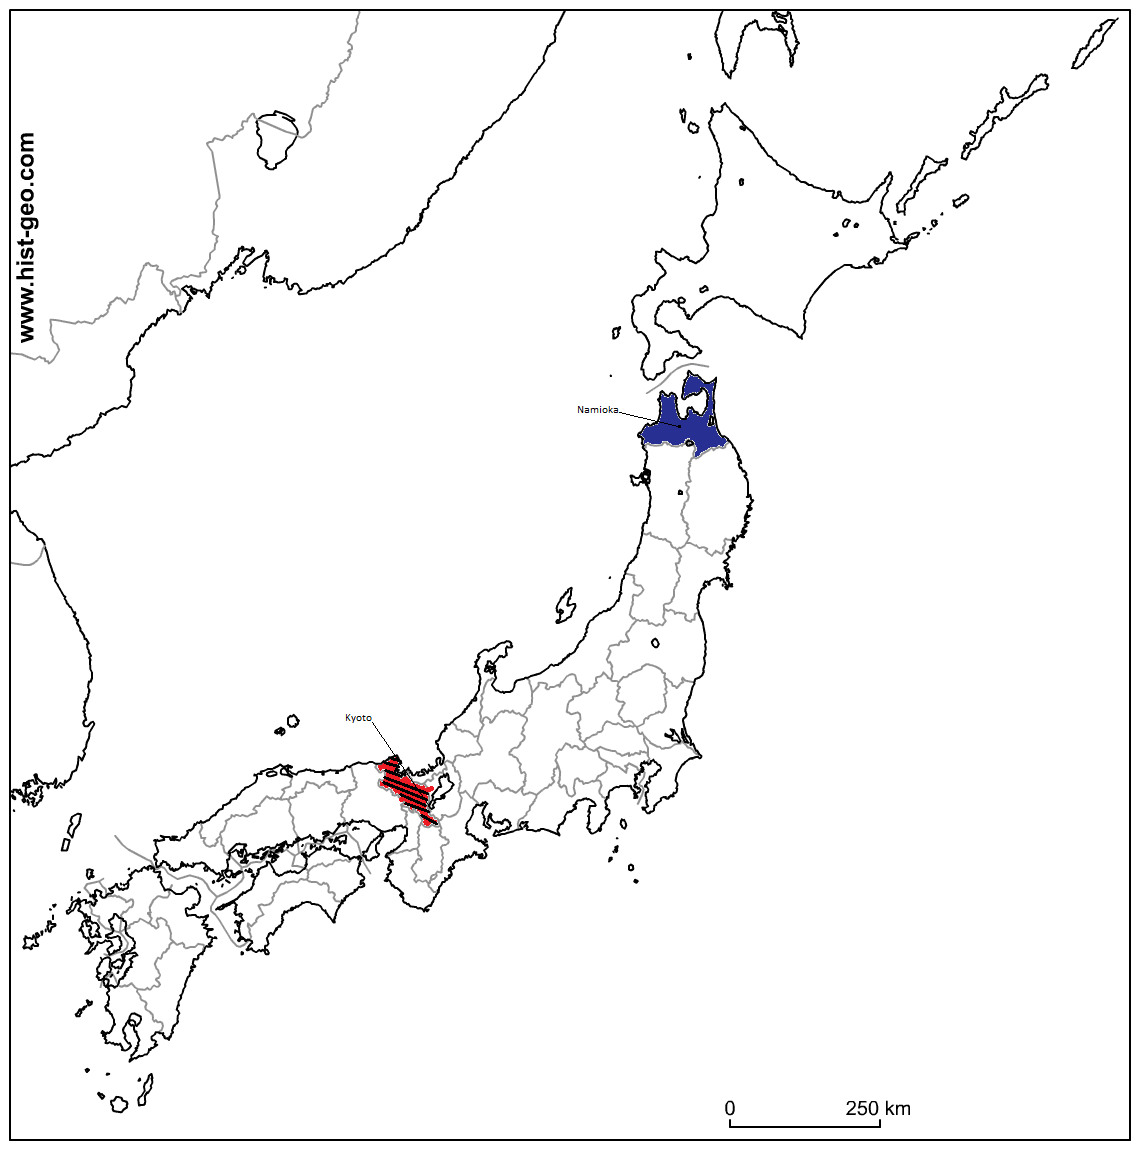 map without numbers.png